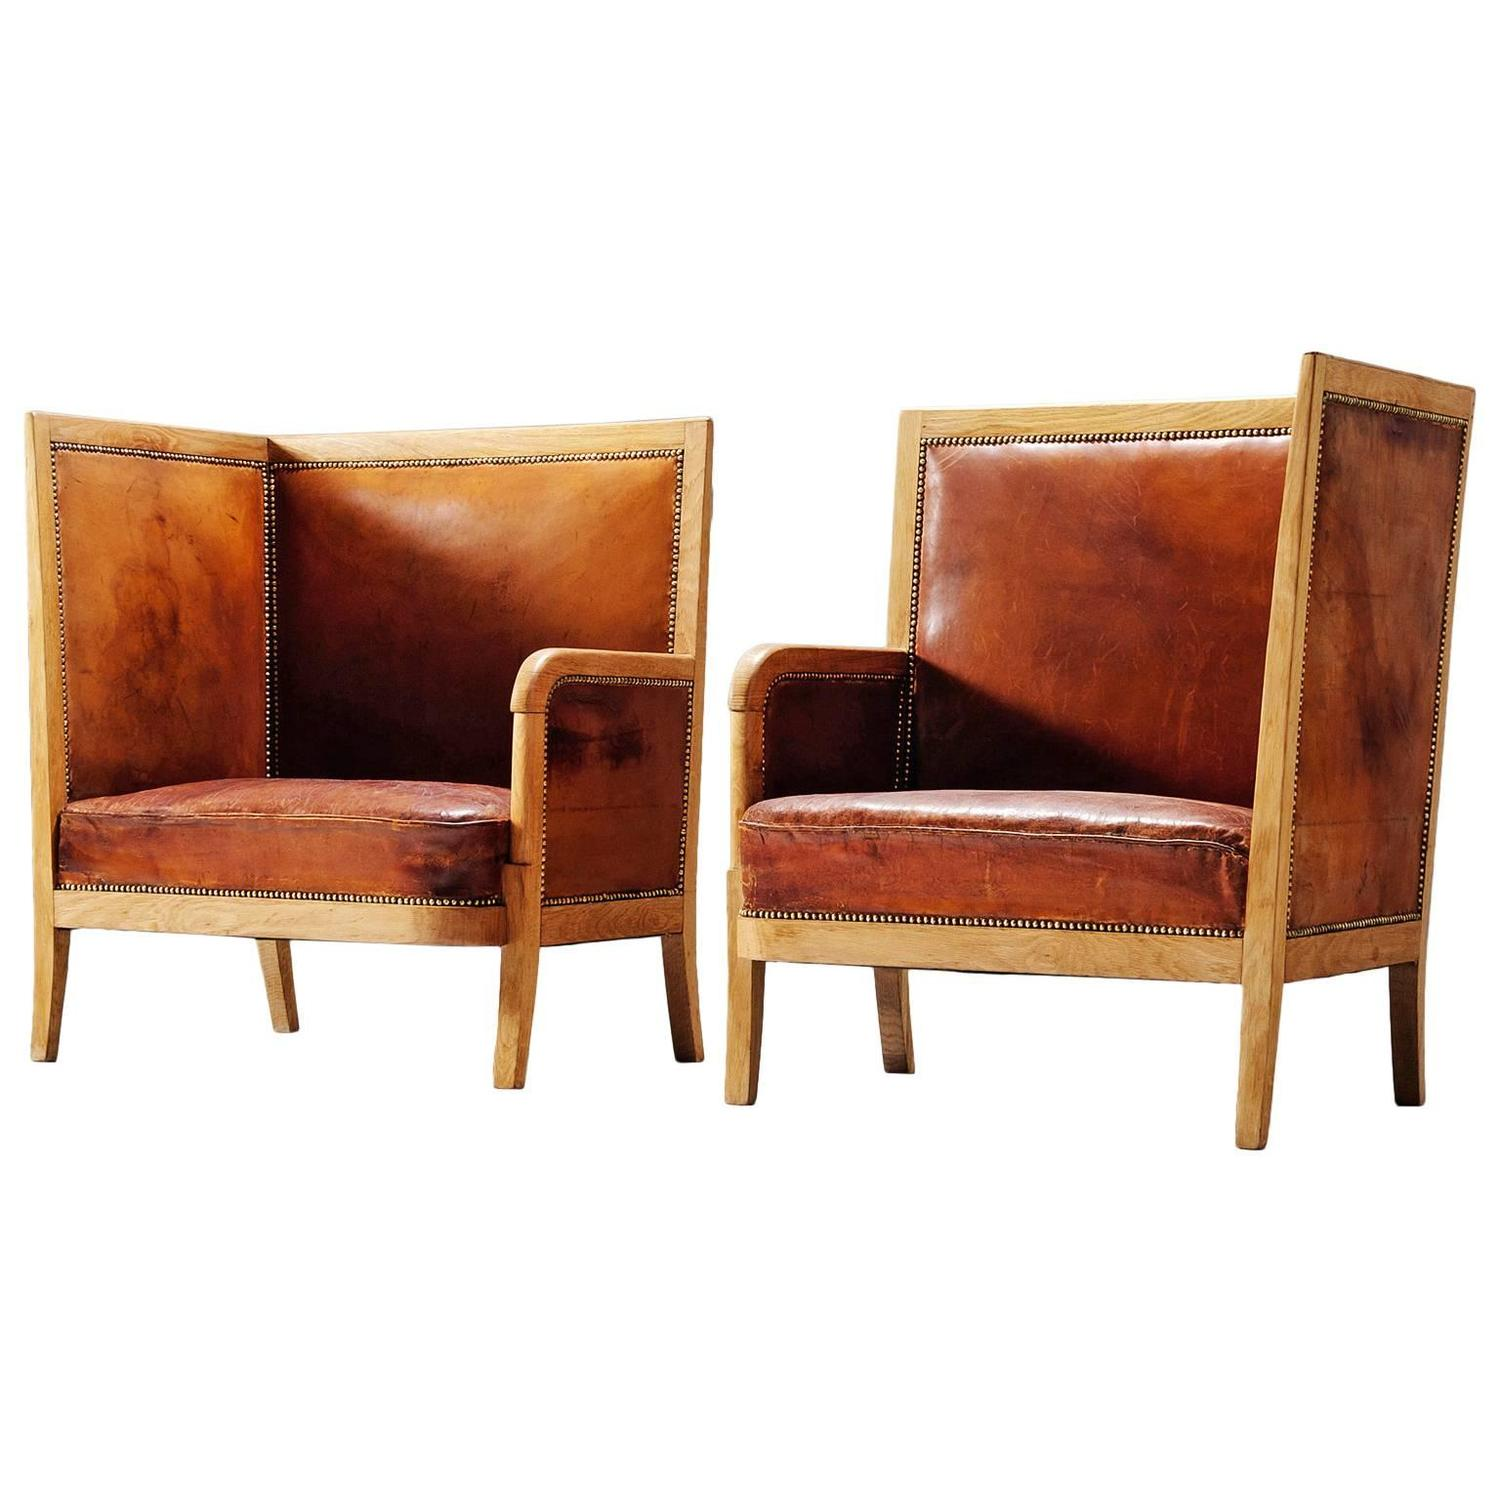 Pair Of High Back Chairs In Cognac Leather For Sale At 1stdibs